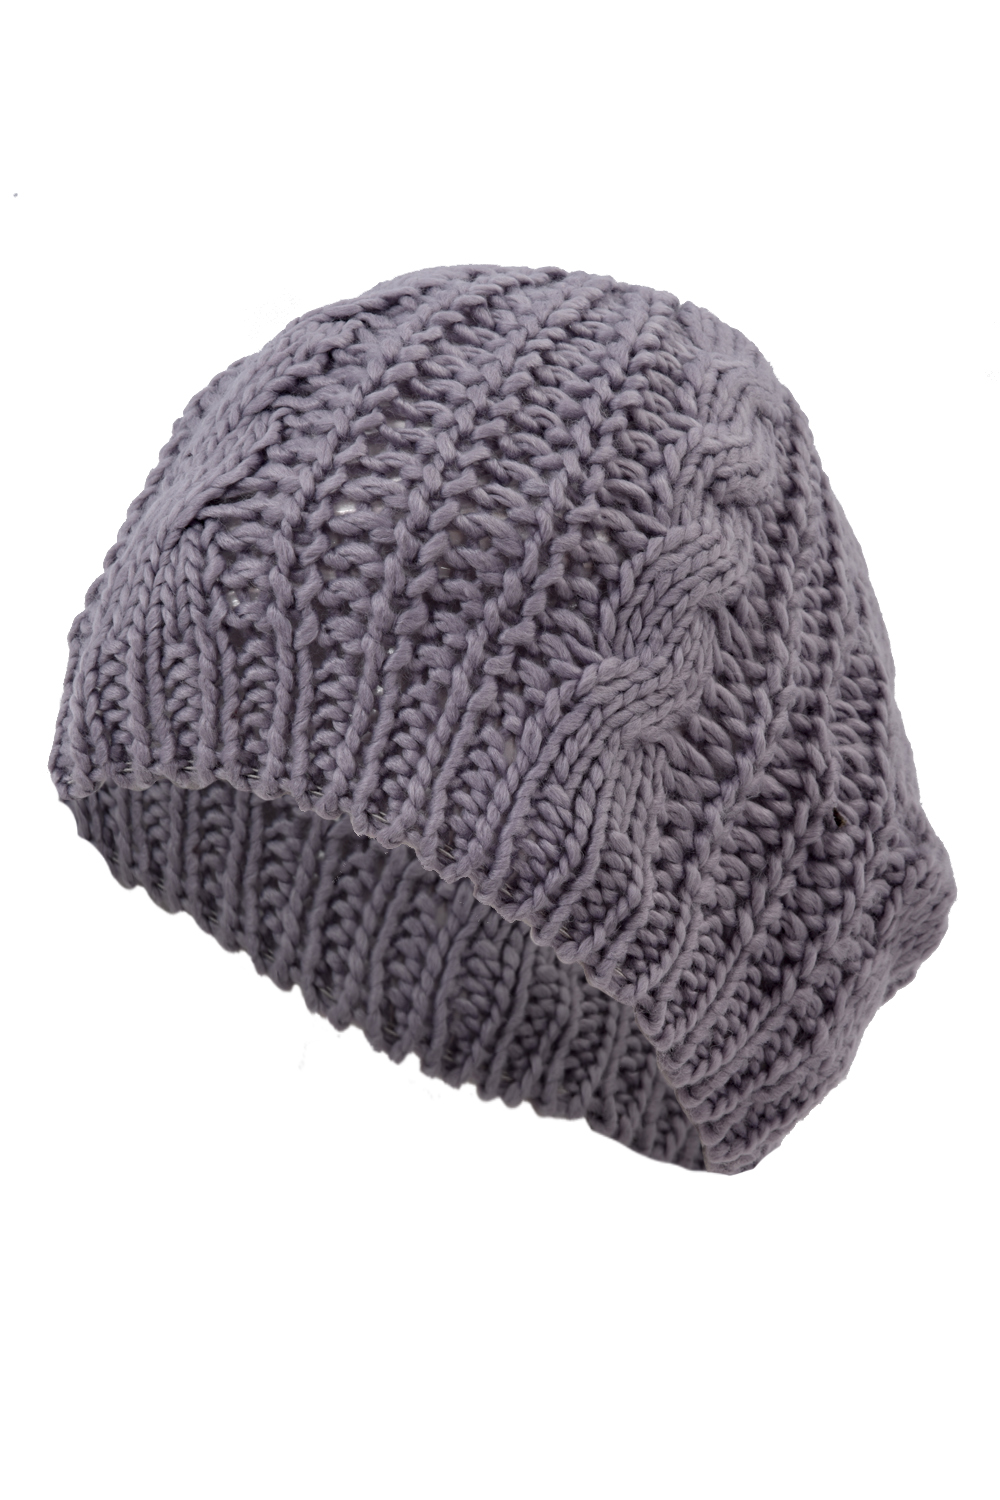 2017 NEW Braided Baggy Beanie Crochet Knitting Warm Winter Wool Hat Ski Cap for Women 2017 new wool grey beanie hat for women warm simple style bad hair day knitting winter wooly hats online ds20170123 x24